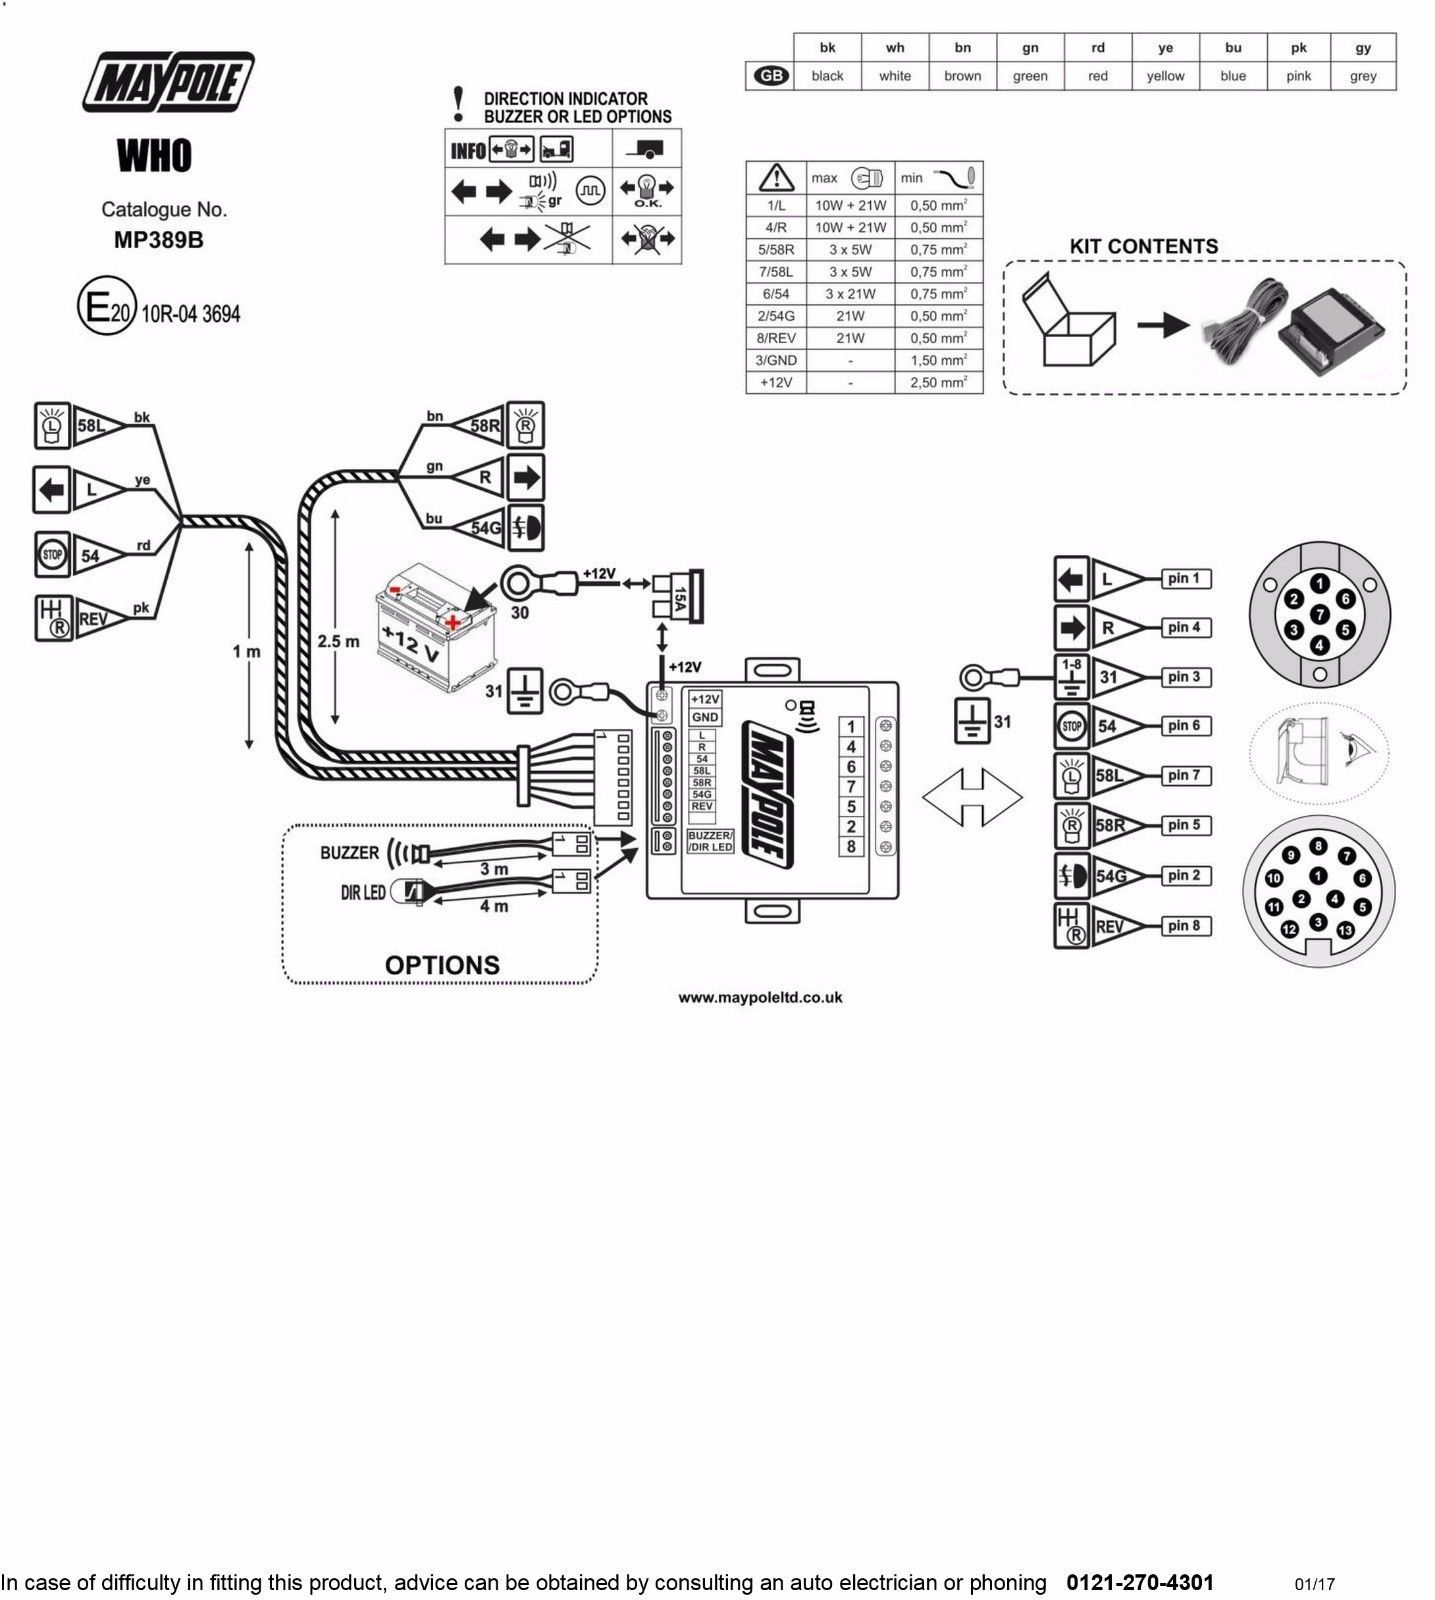 Wiring Diagram For Towbar With Bypass Relay